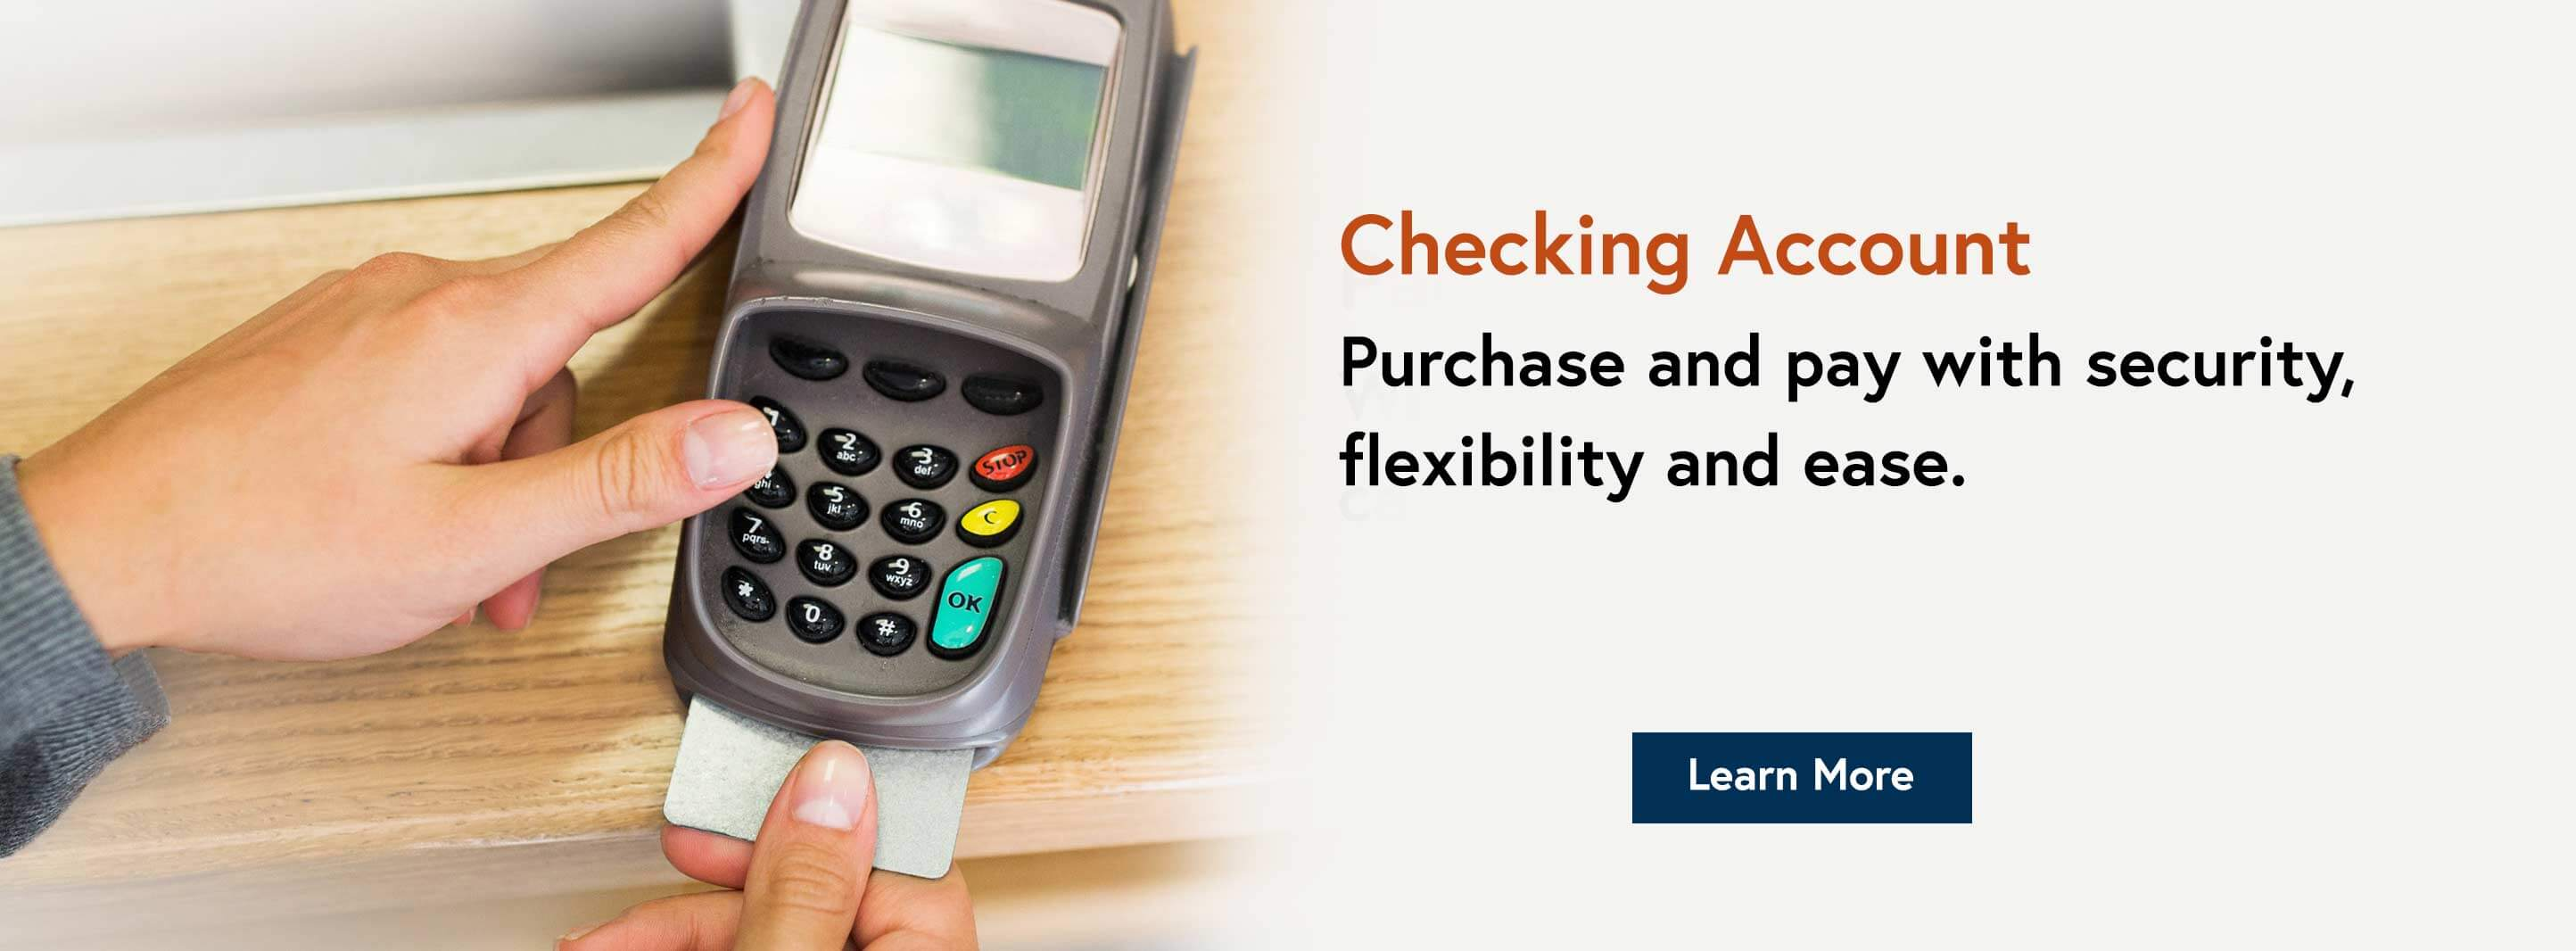 Checking Account. Purchase and pay with security, flexibility and ease. Learn More.